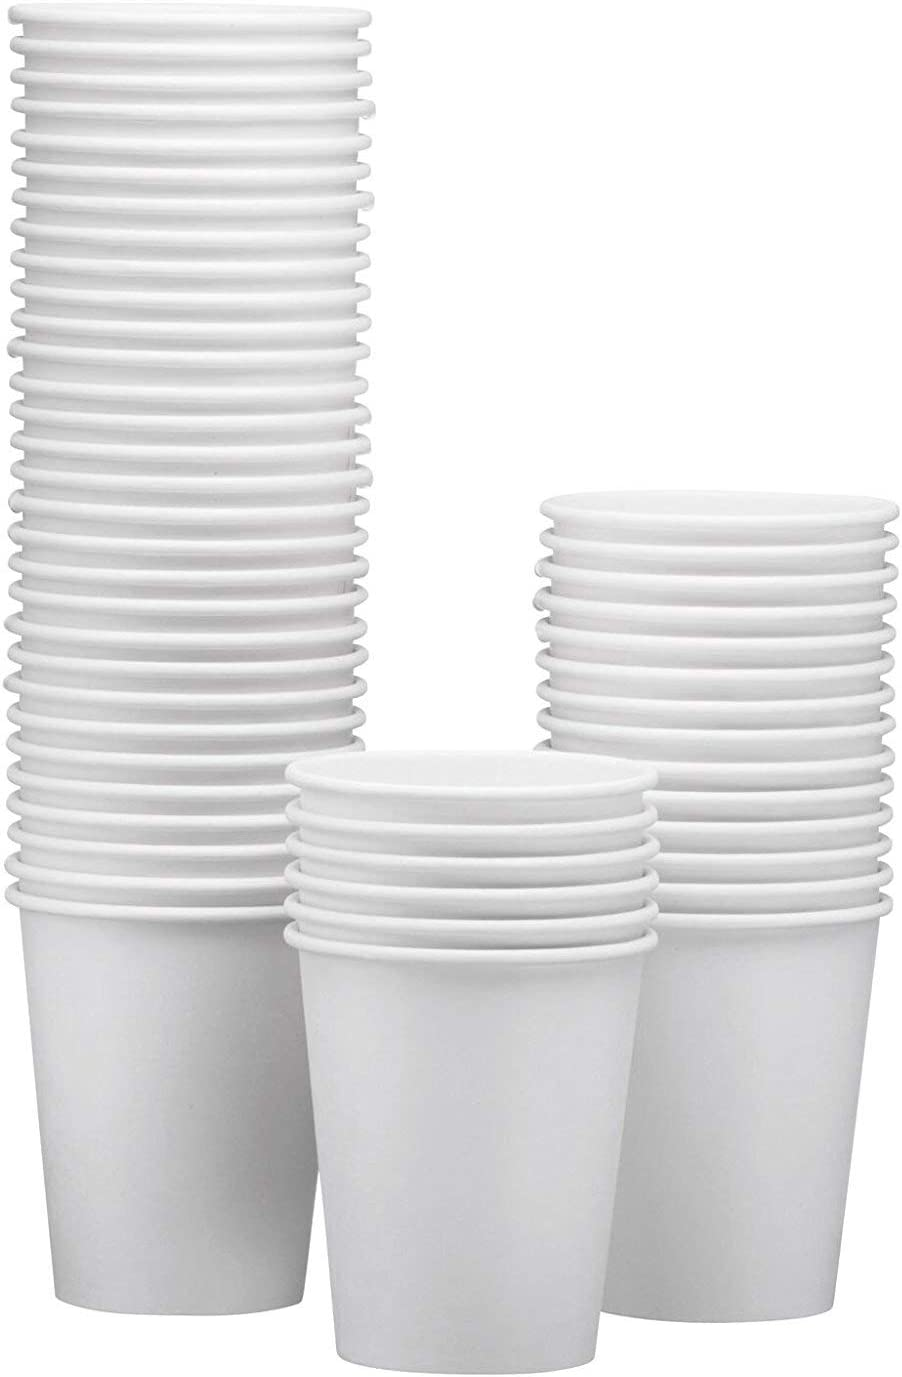 NYHI 50-Pack White Paper Disposable Cups – Hot/Cold Beverage Drinking Cup for Water, Juice, Coffee or Tea – Ideal for Water Coolers, Party, or Coffee On the Go' (12 oz)